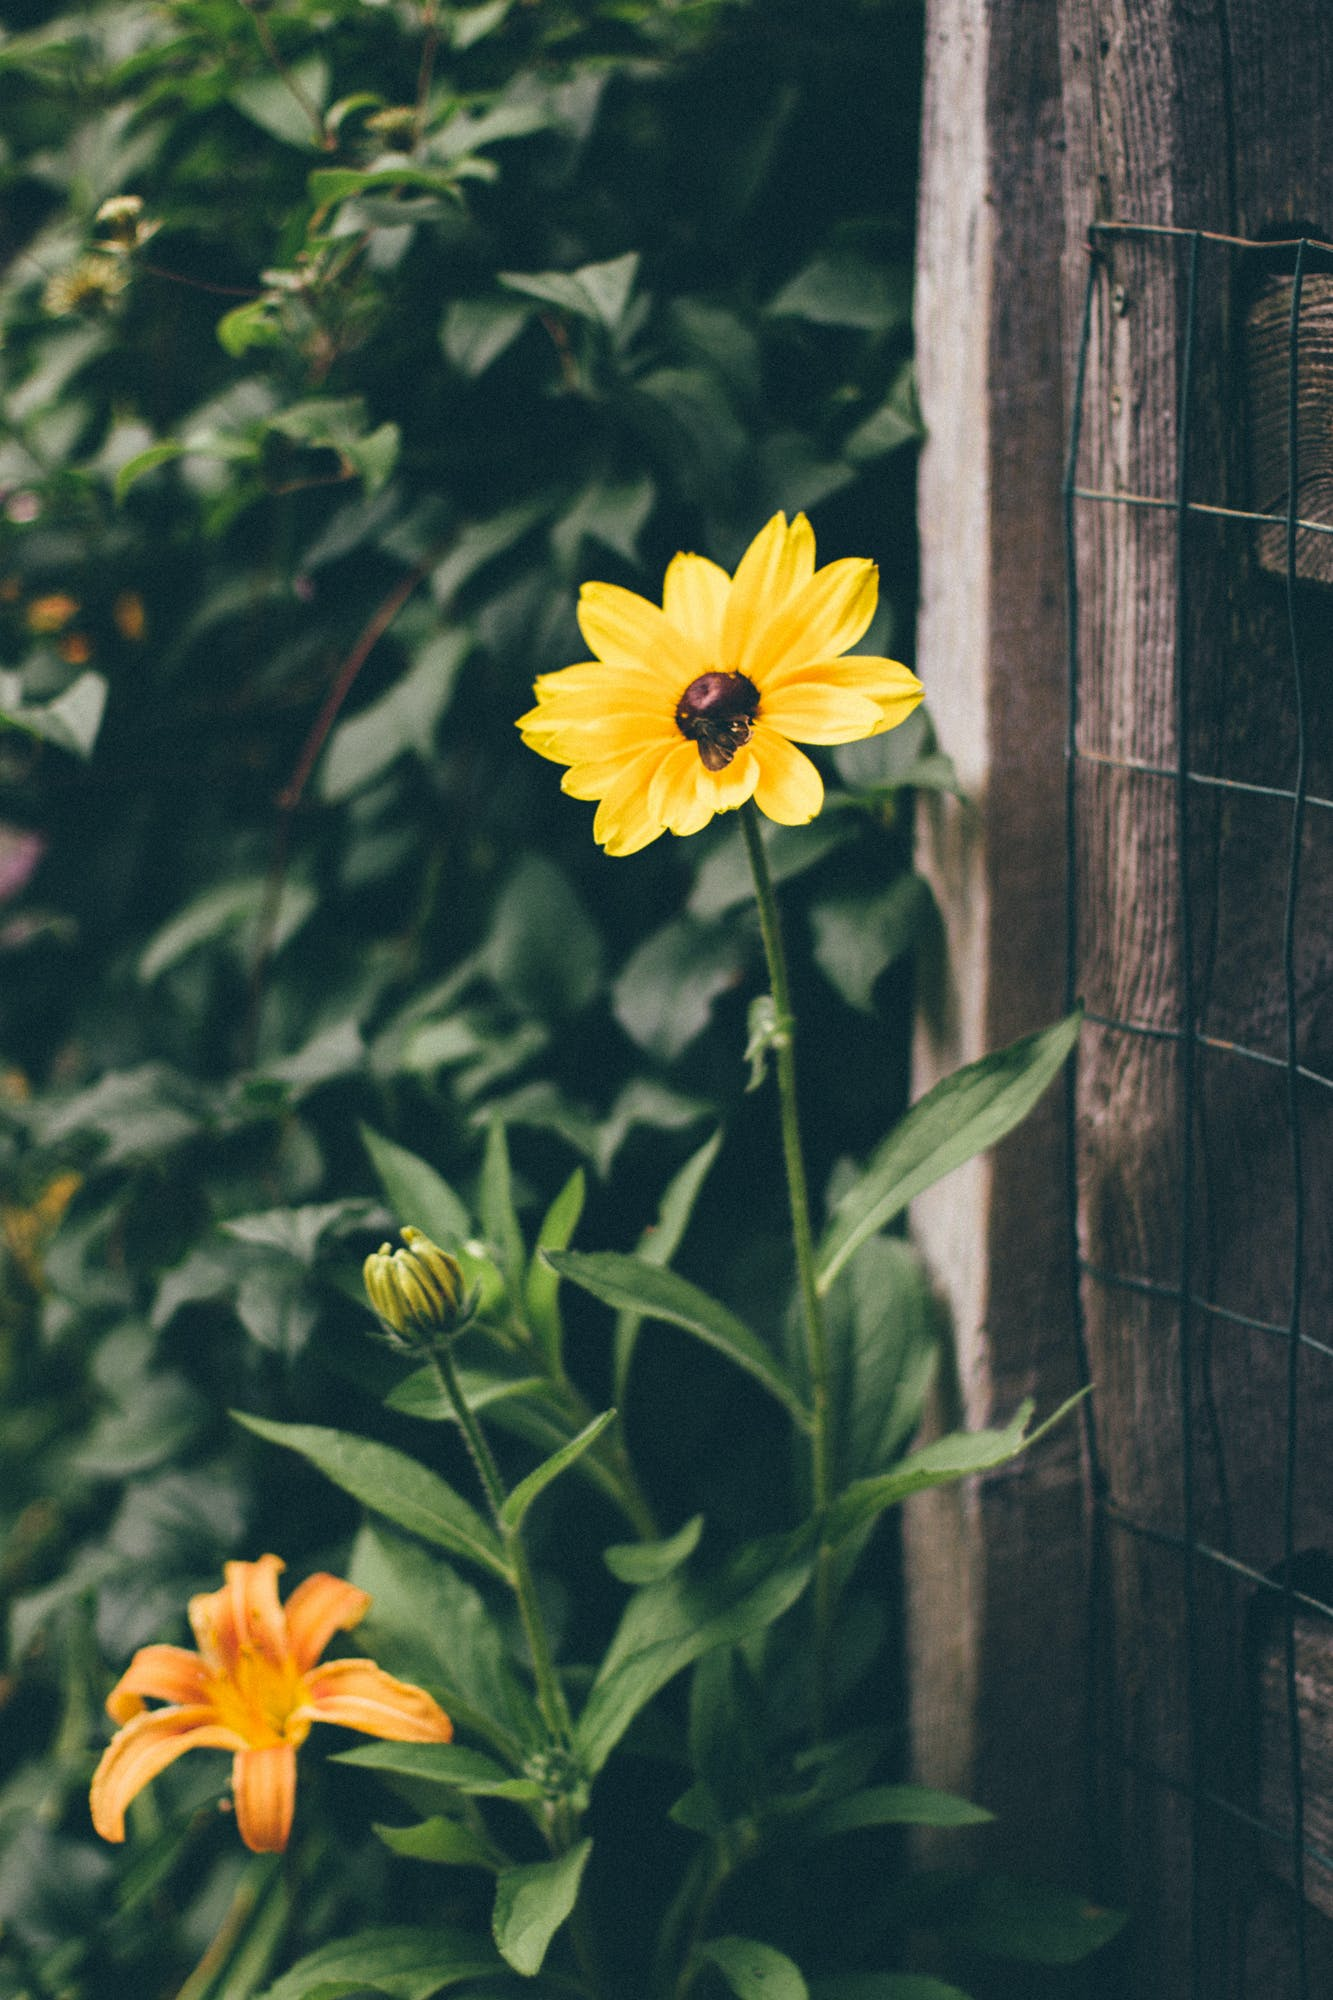 Yellow and Black Flower Infront of Brown Wood Frame Fence